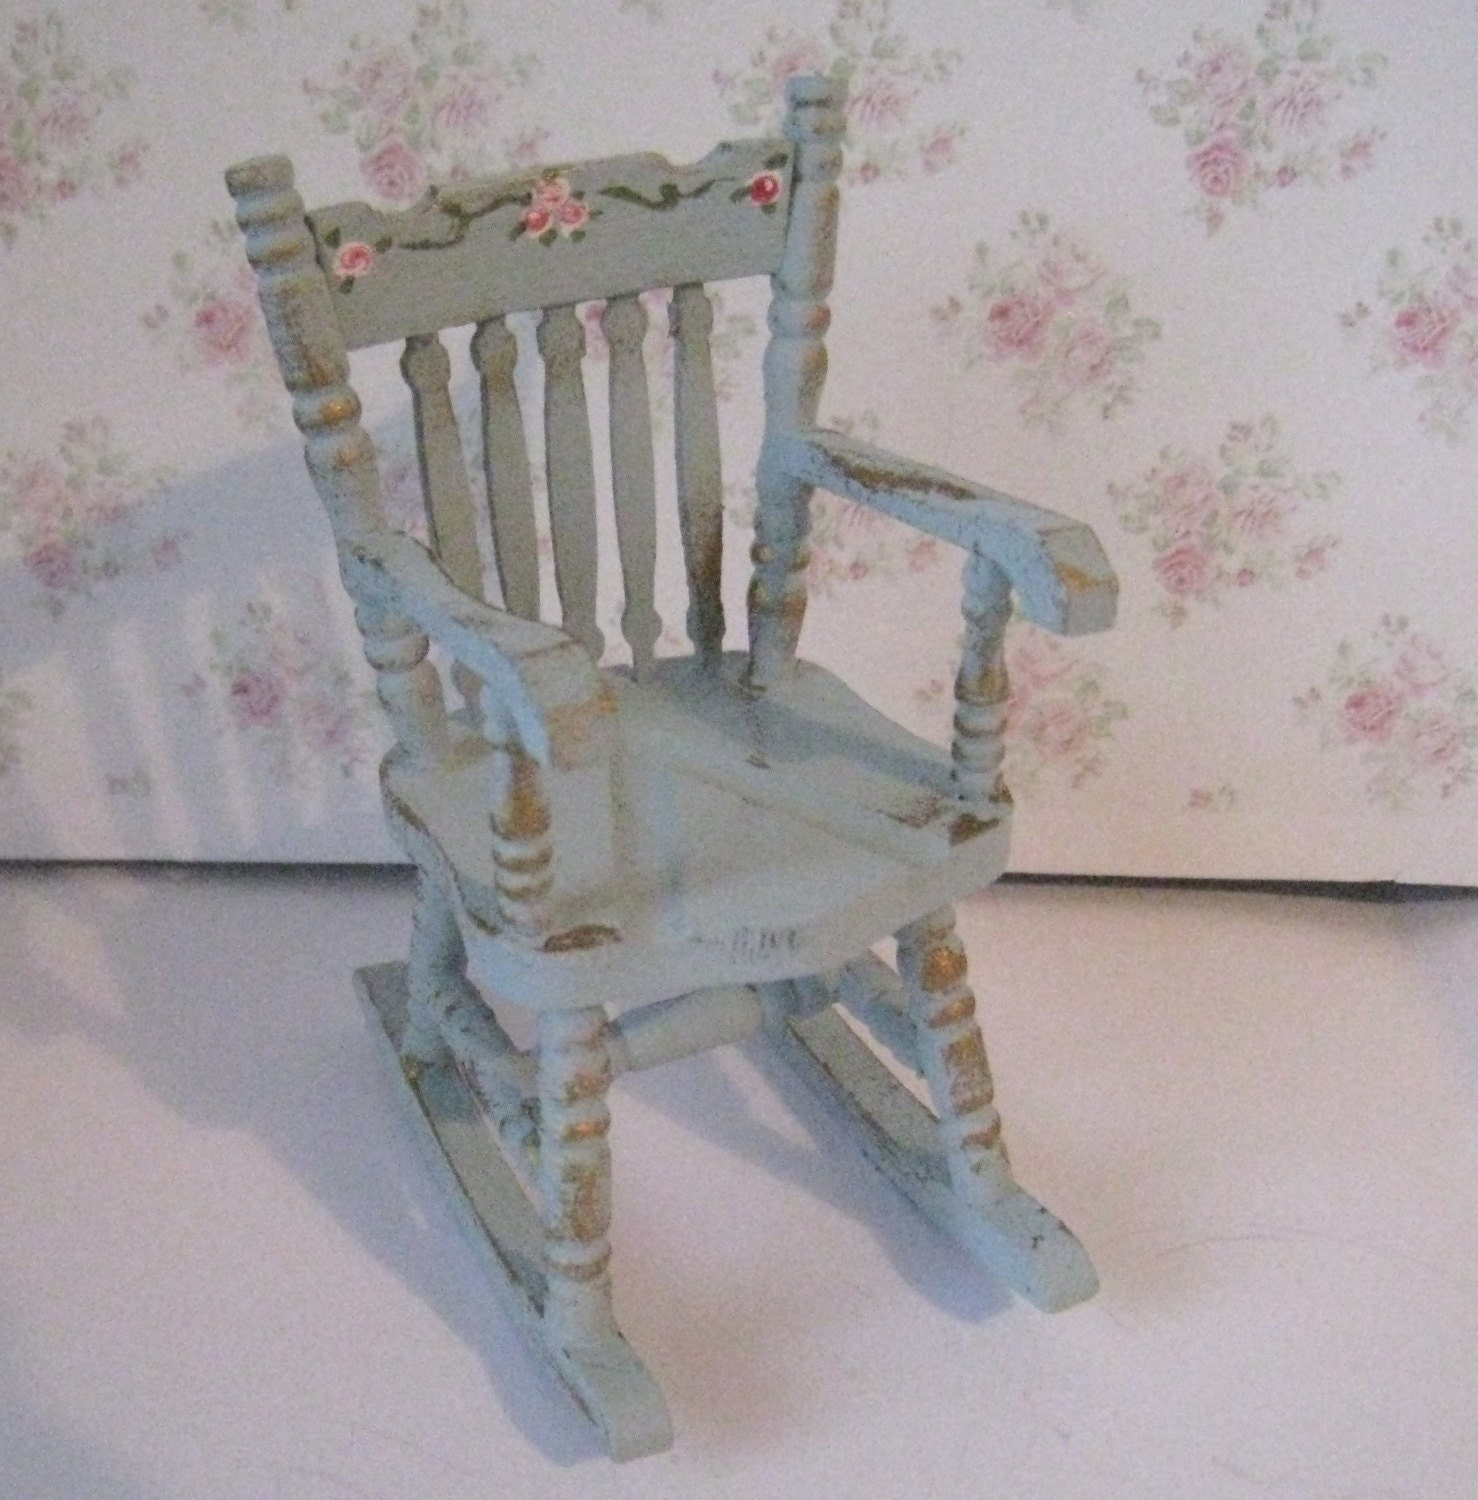 Rocking chair shabby chic duck egg blue. by Insomesmallwayminis